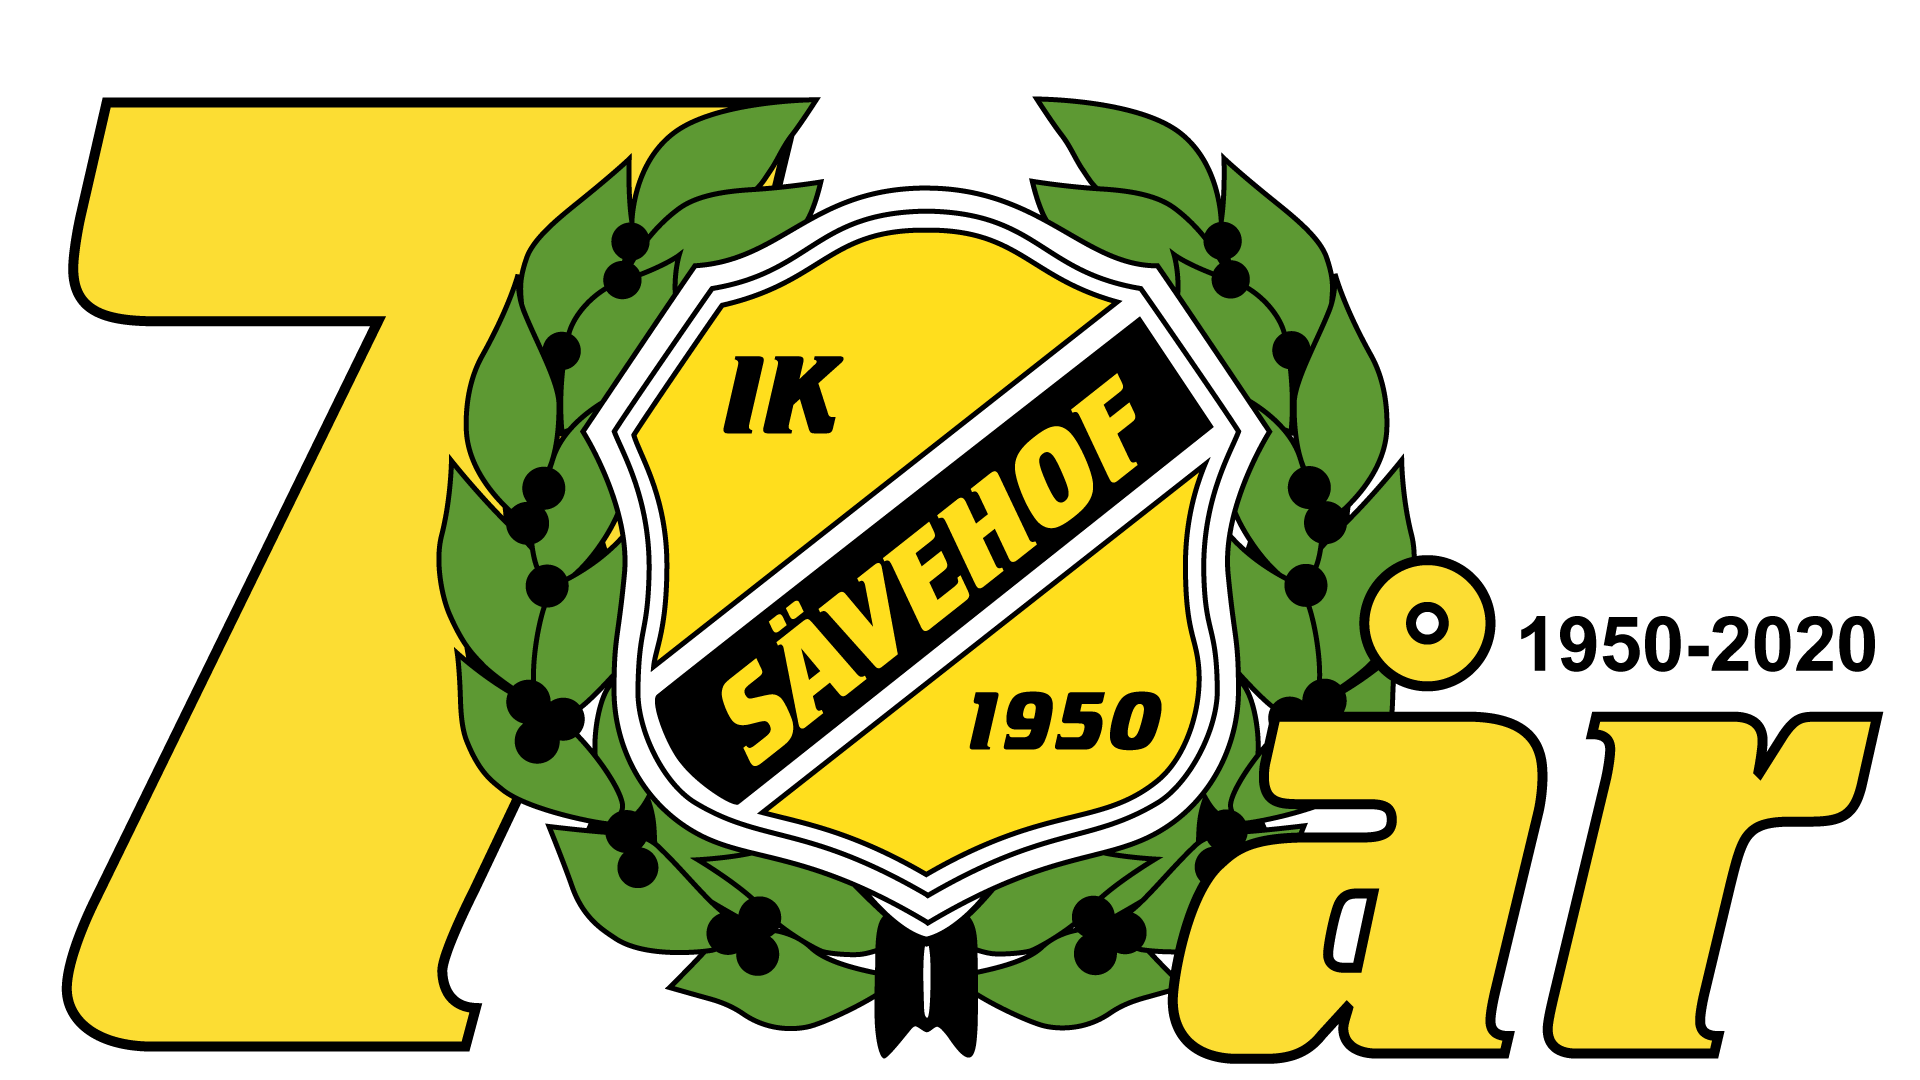 IK Sävehof